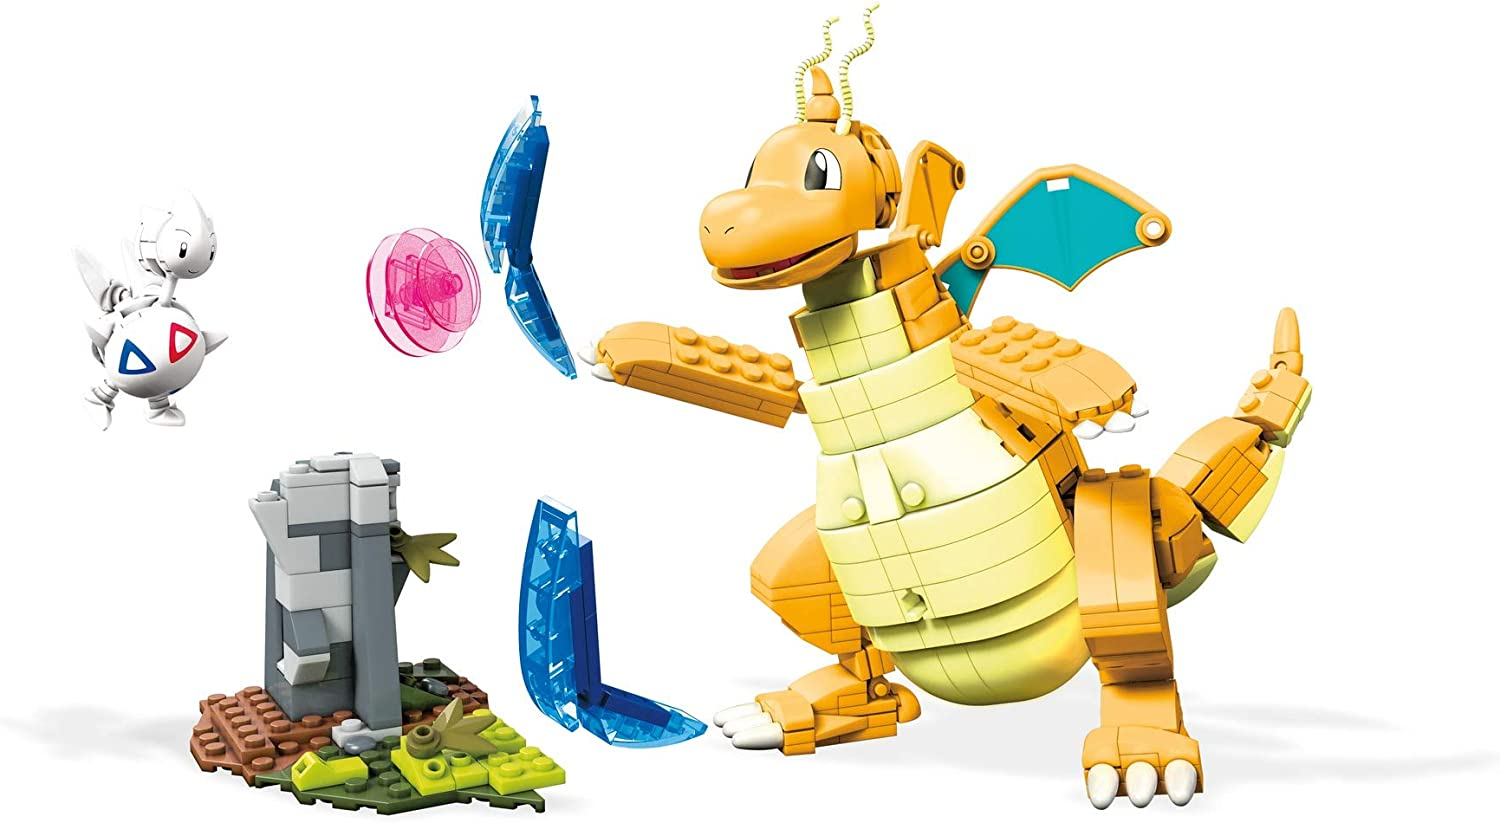 PlaySet - Duello Dragonite Contro Togetic